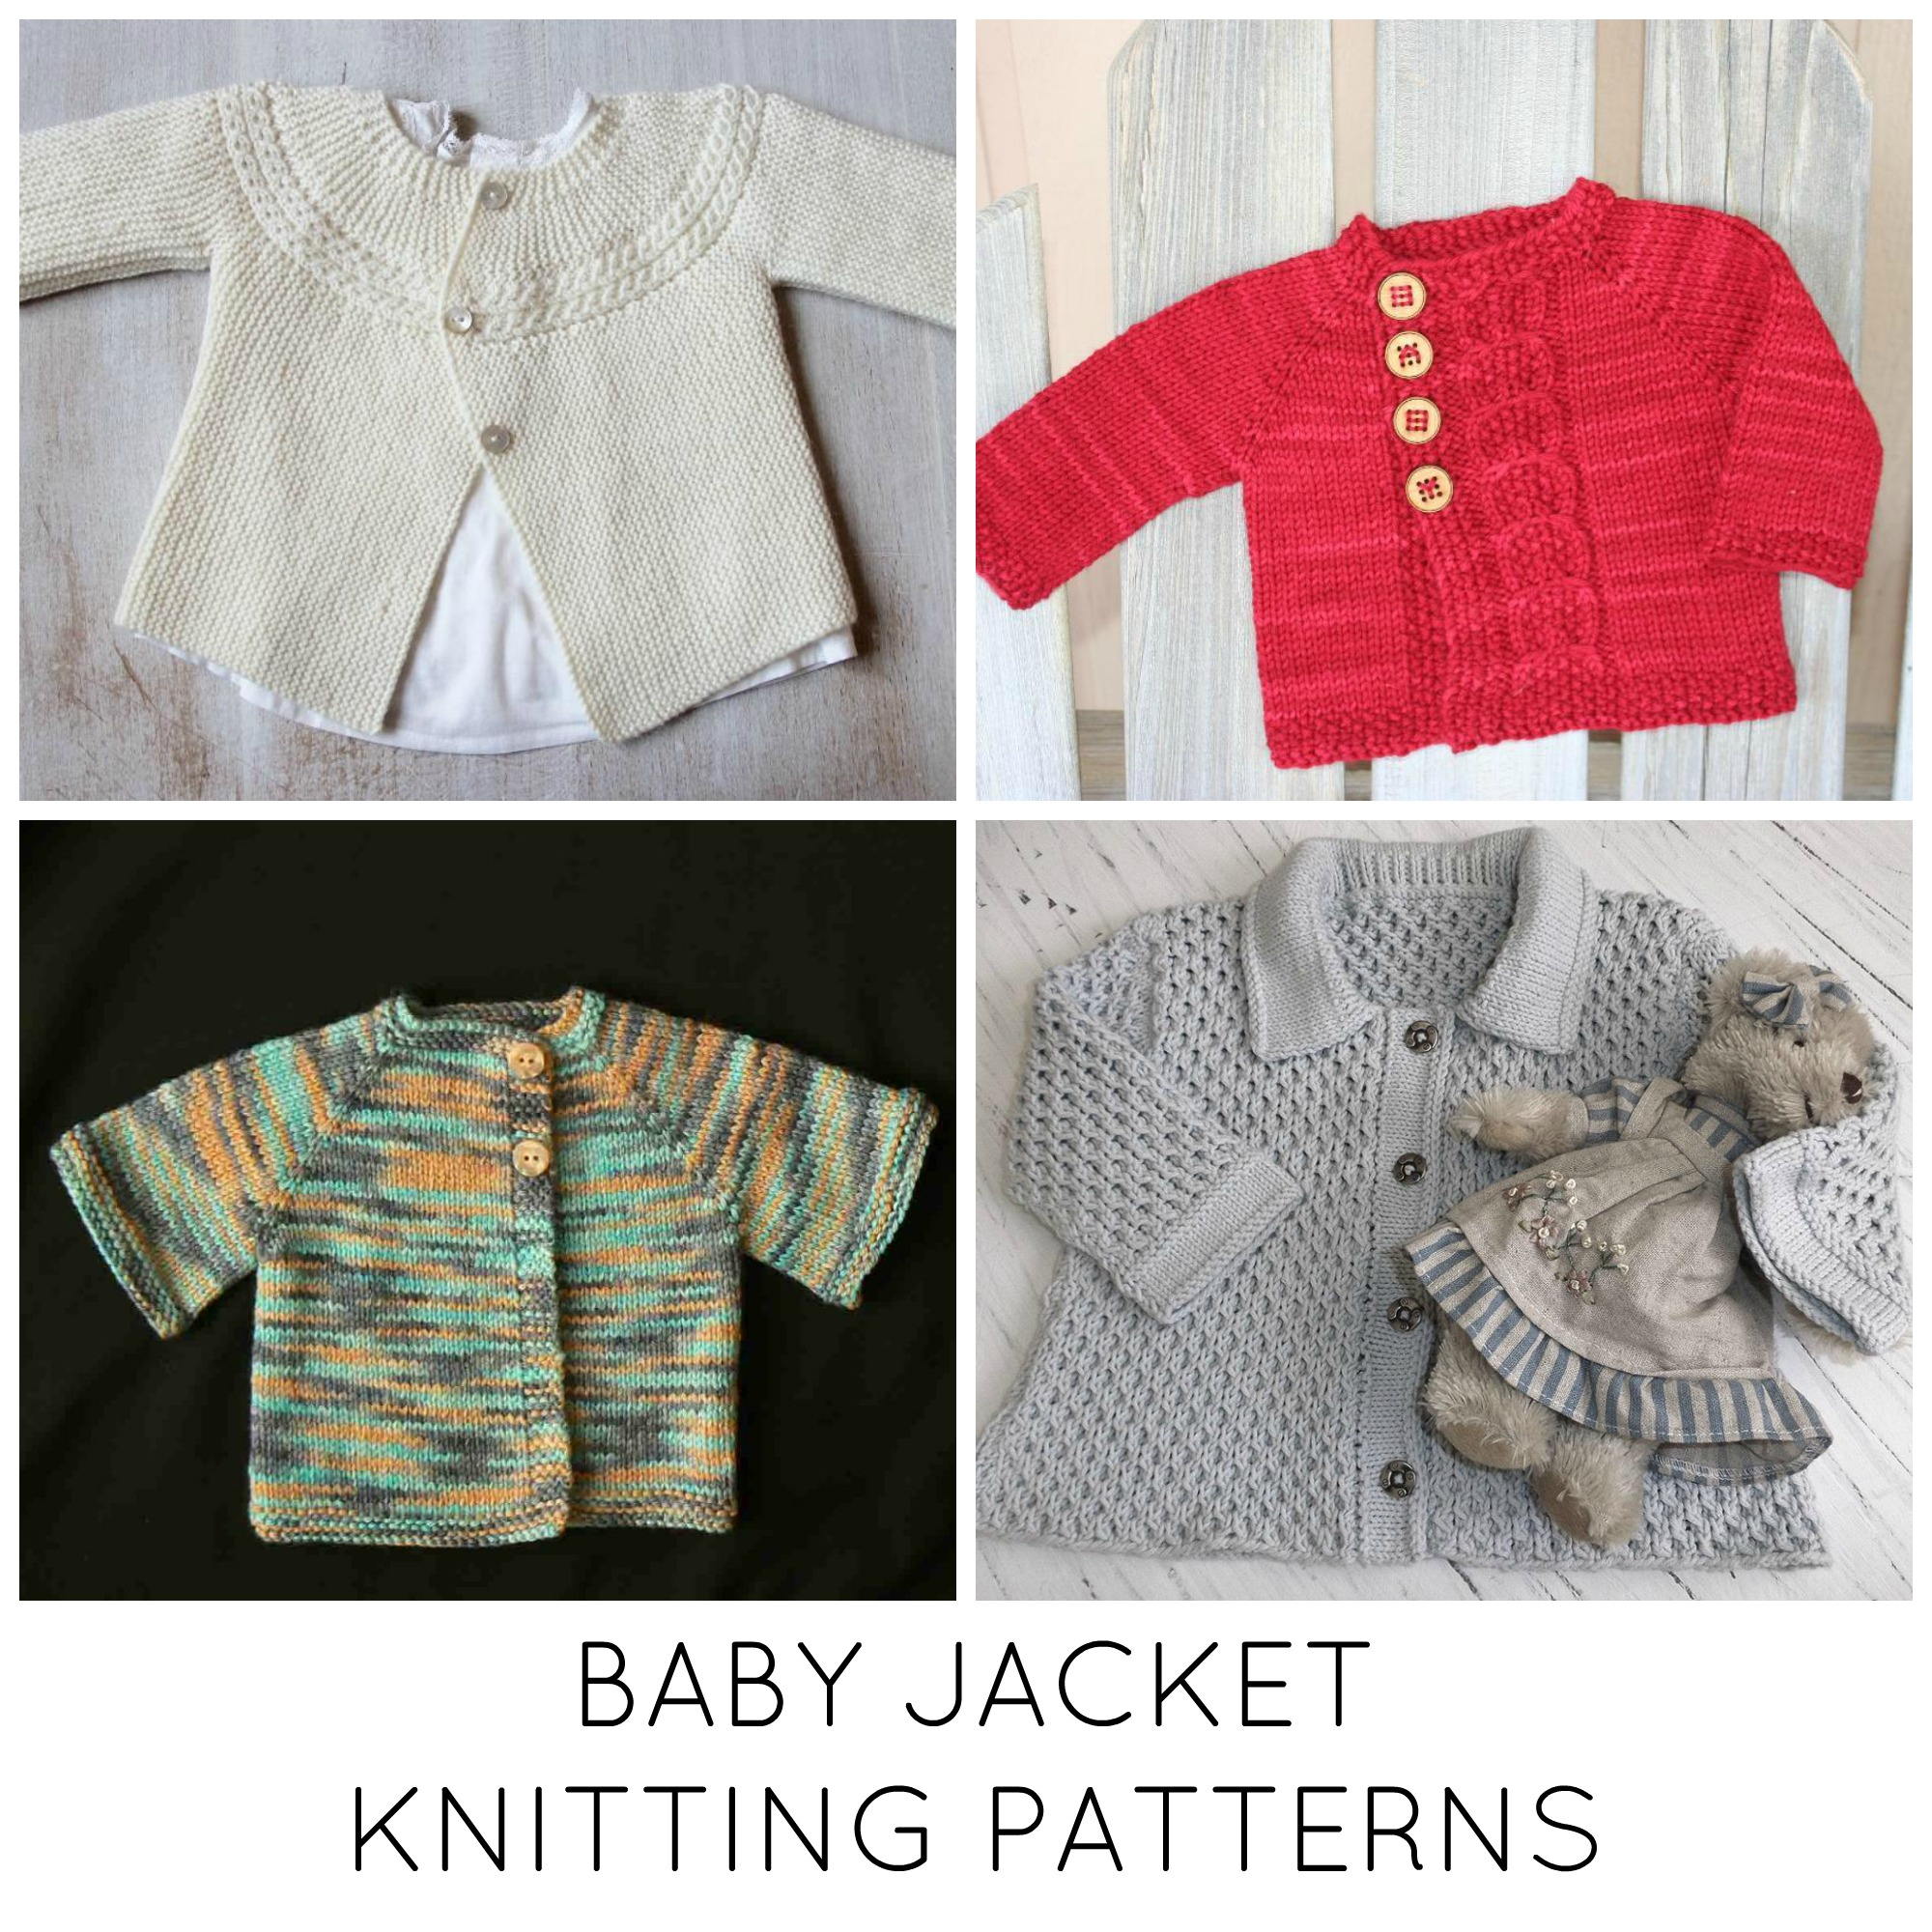 Knitted Jacket Patterns Free Our Favorite Free Ba Sweater Knitting Patterns